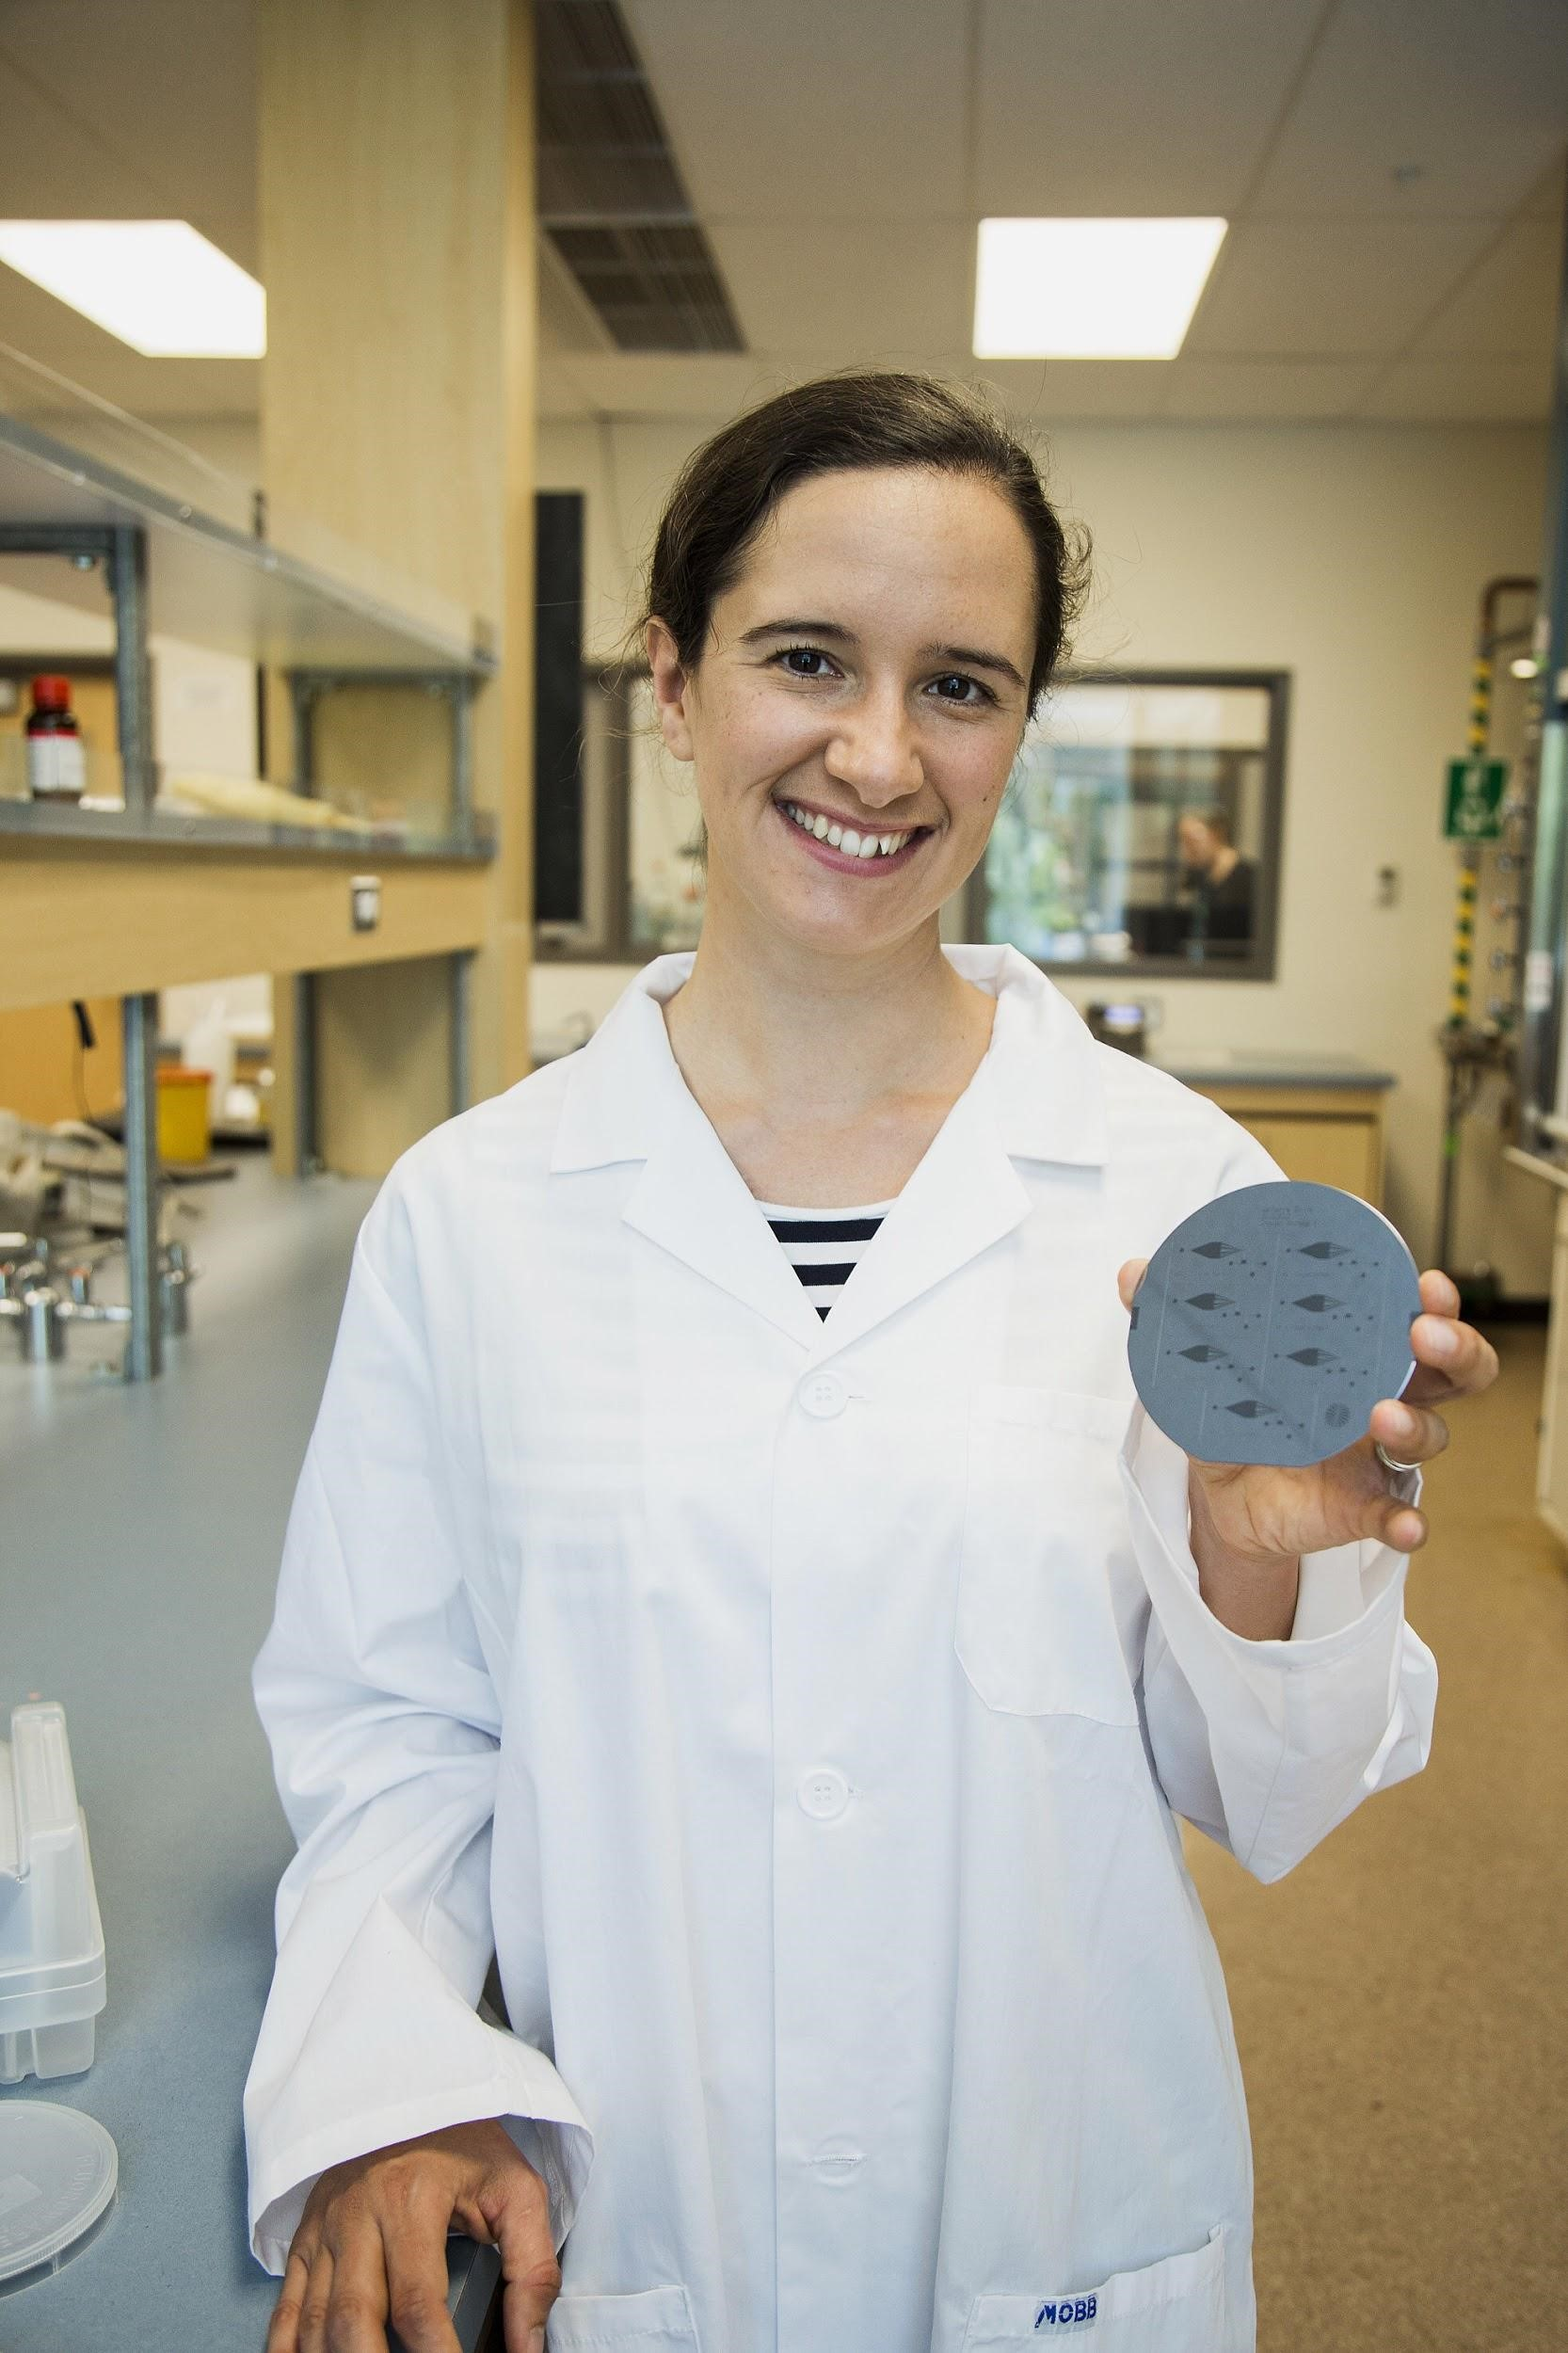 Katherine holding a microfluidic (lab-on-a-chip) device produced in her lab